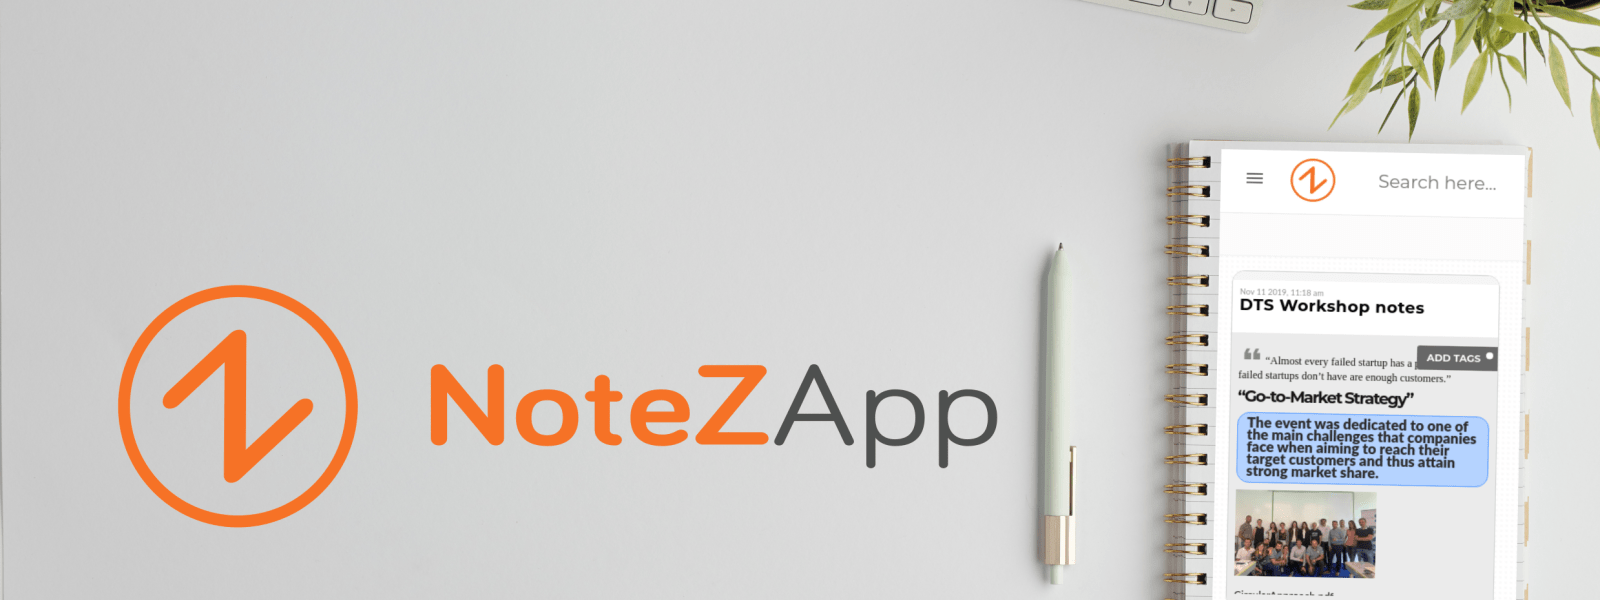 NoteZApp by DNH Soft